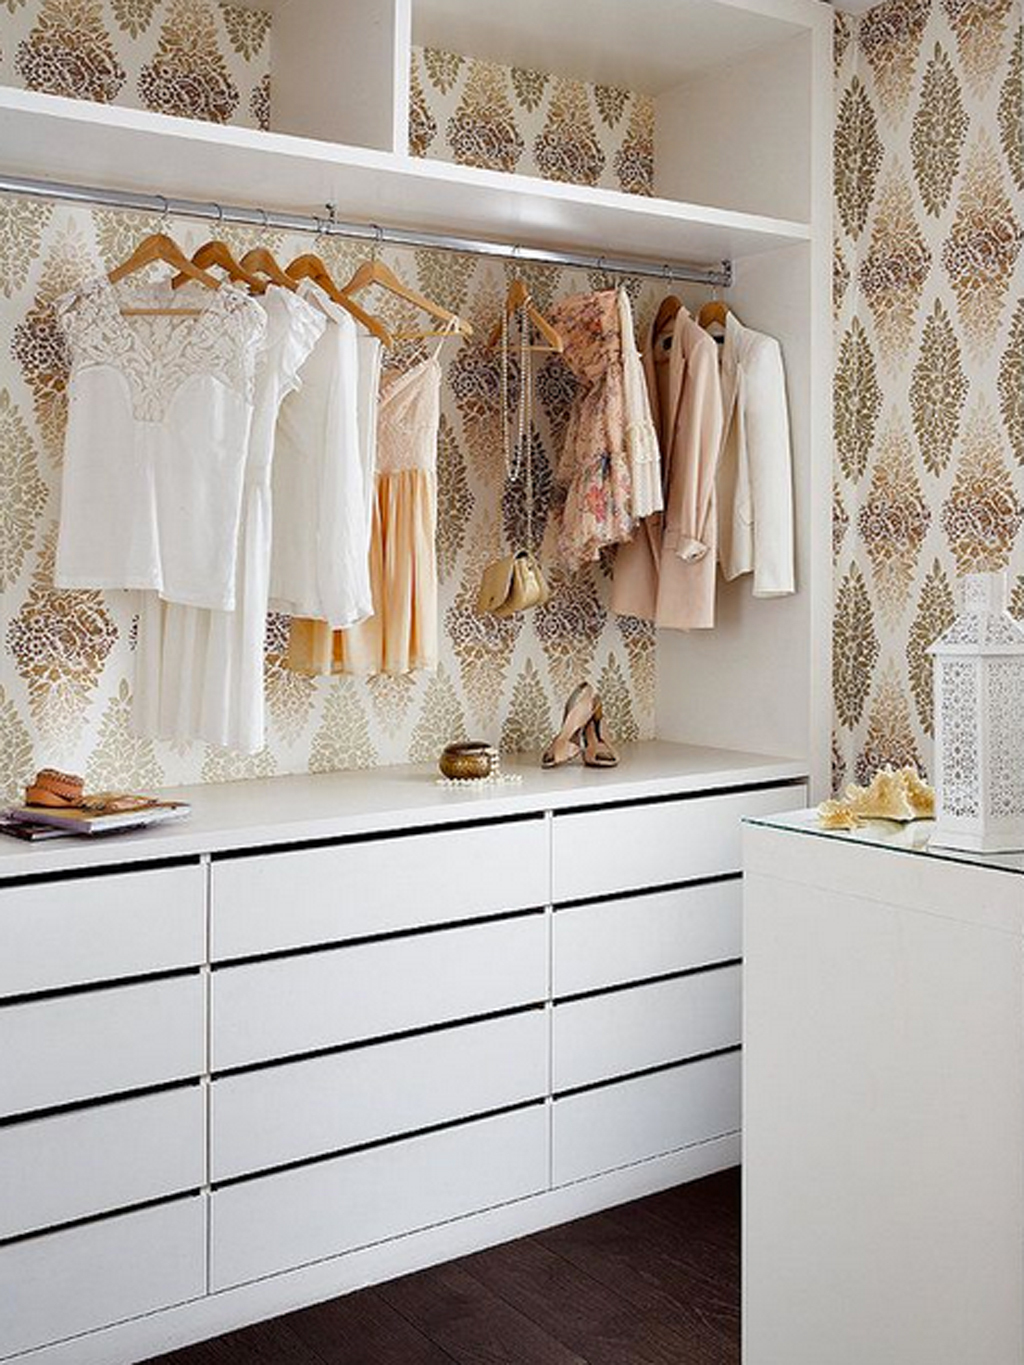 how to wallpaper your closet gold and white ikea hacks closet cheap spring decor ideas decorate budget shop room ideas pinterest hang organize clothes celebrity